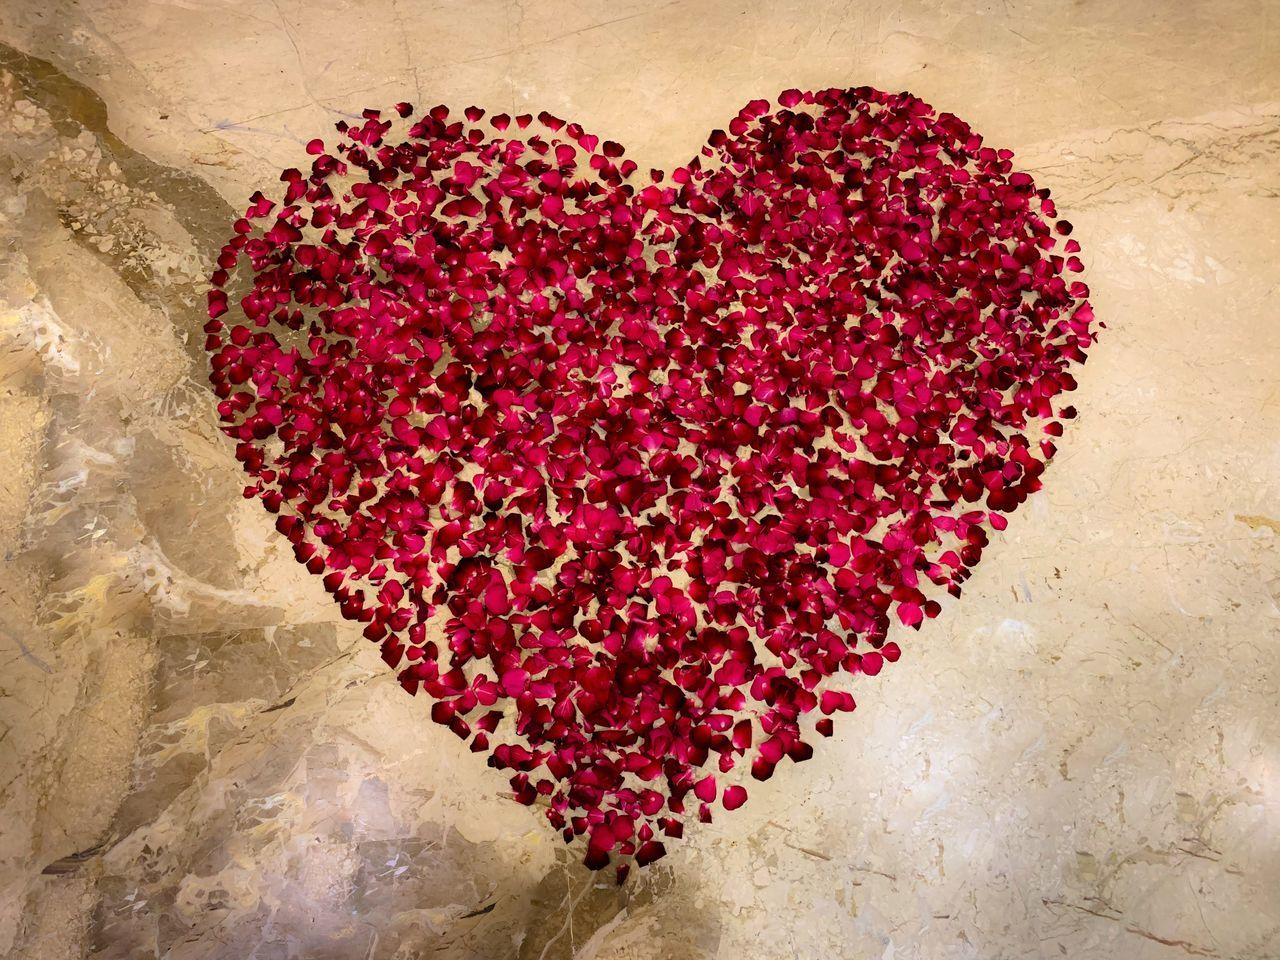 heart shape, love, positive emotion, emotion, romance, indoors, red, valentine's day - holiday, close-up, food and drink, directly above, high angle view, freshness, food, creativity, flower, still life, art and craft, large group of objects